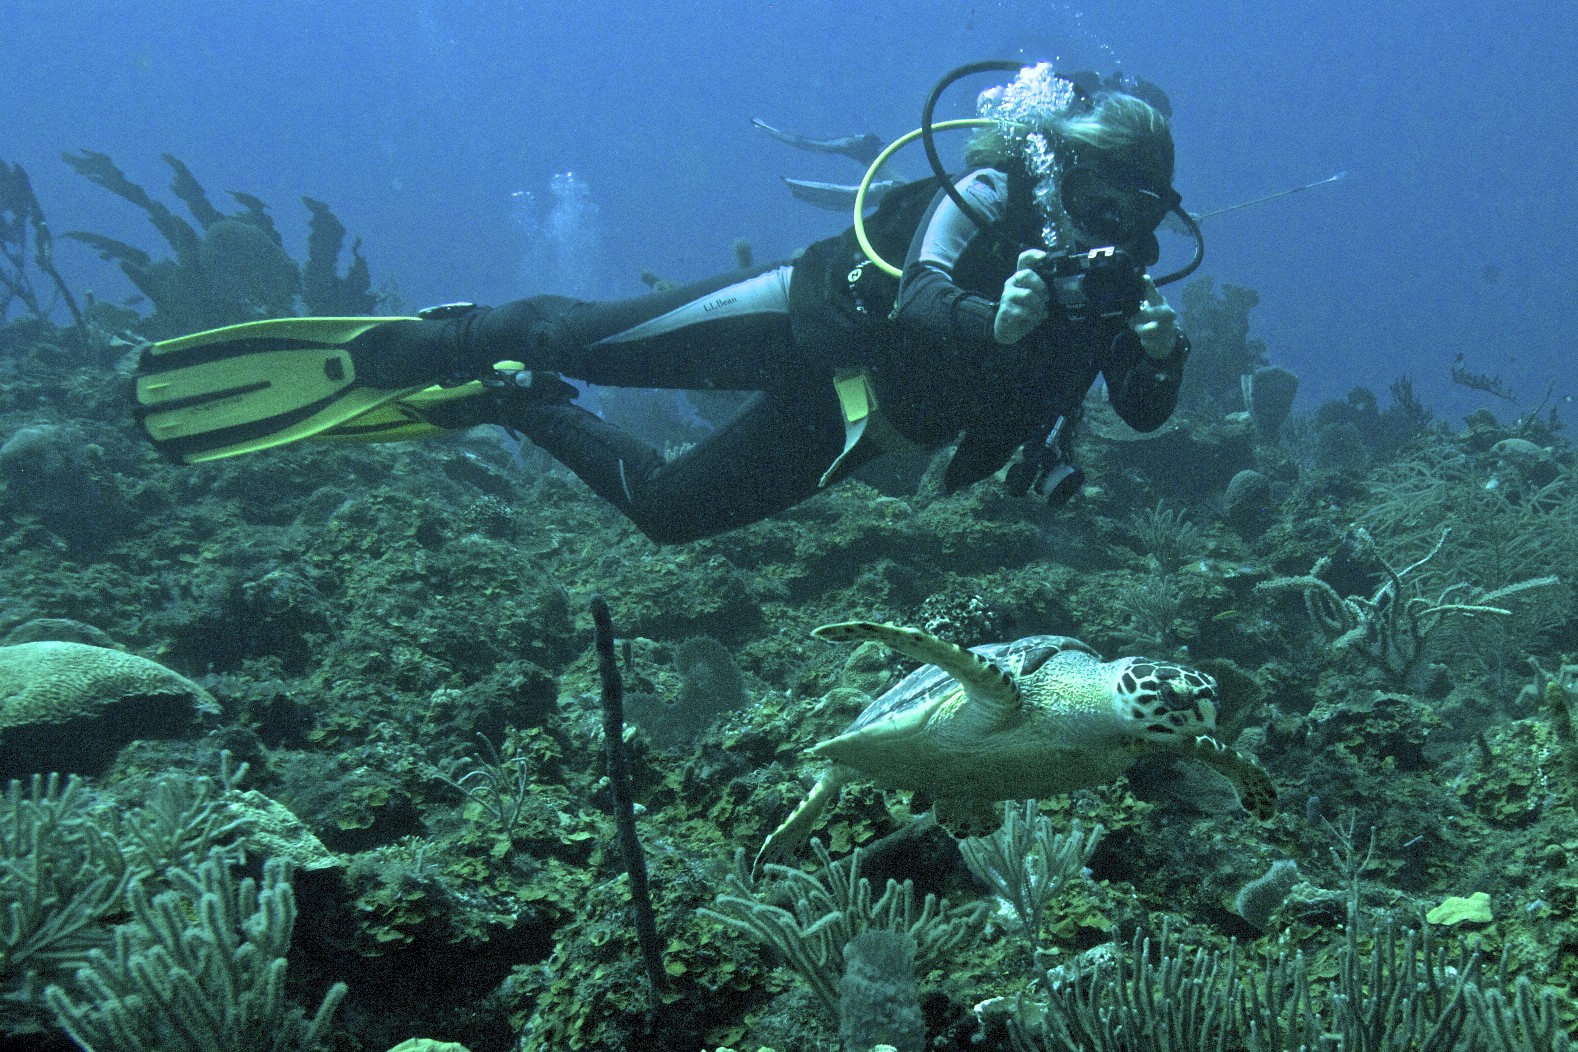 above picture: UW Photography dive at Cayos Cochinos Sea Mounts